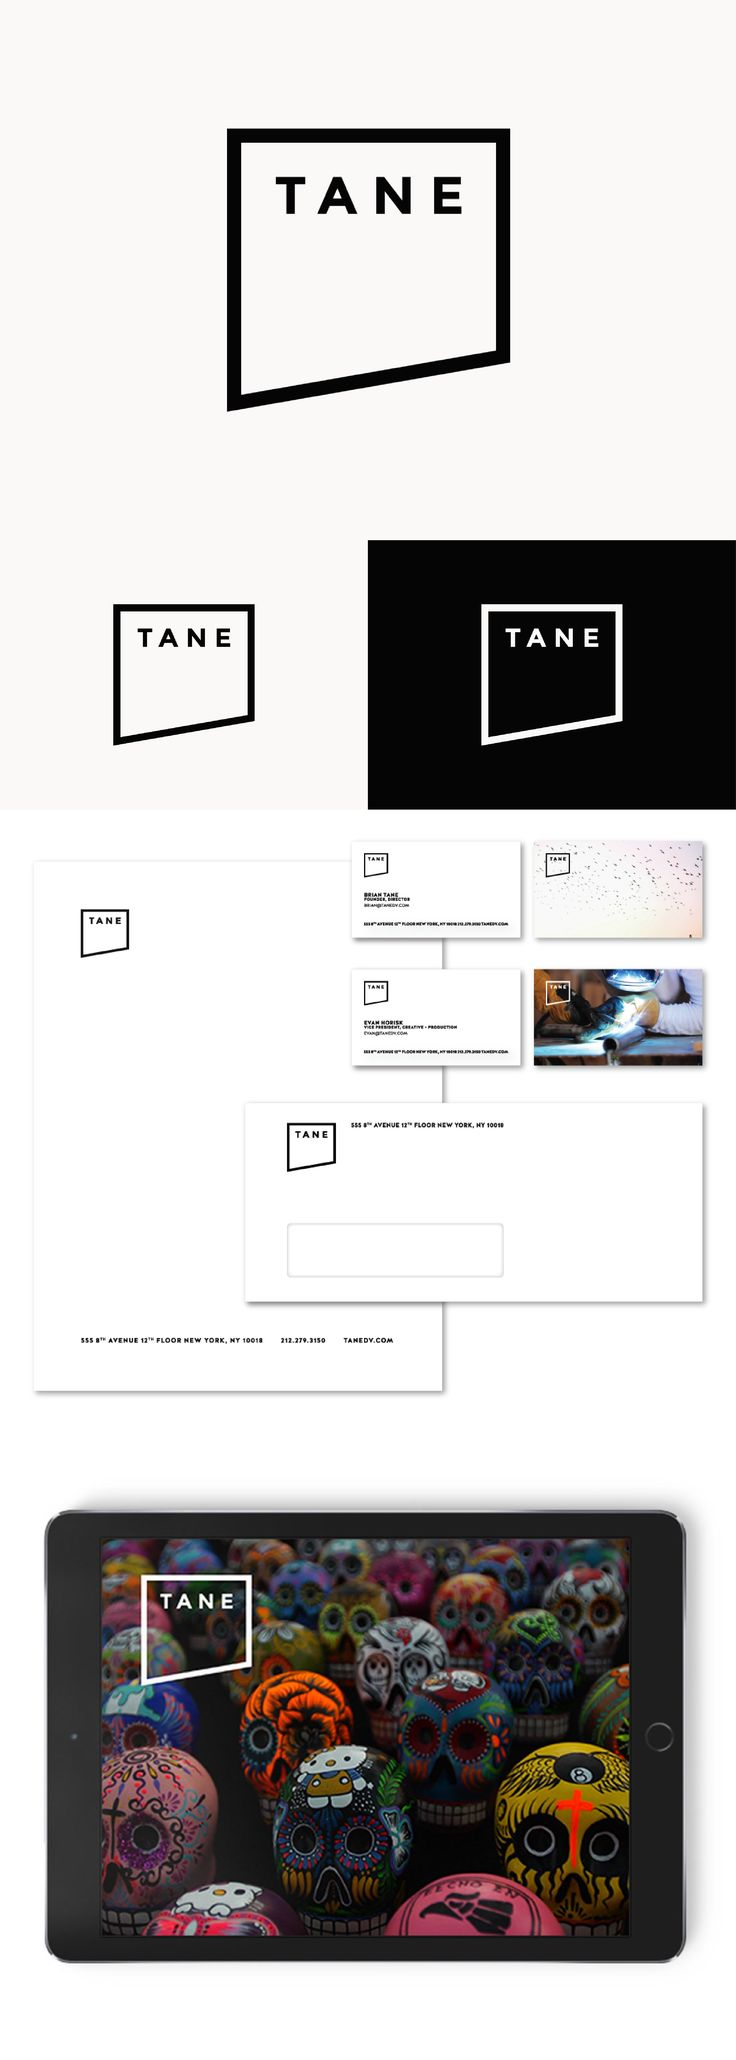 "Logo rebranding and new visual identity system for NY-based digital video agency: a film frame has been artistically cut off to create a bold logo mark, while ultra minimal approach helped the stationery to focus on featuring the studio's very own work (e.g. each business card has a unique ""frozen film frame"" background)"